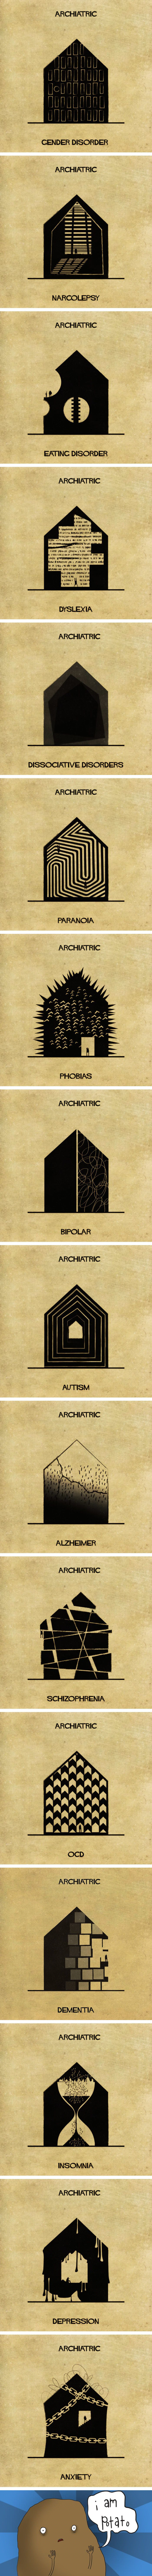 Federico Babina using architecture to explain 16 mental illnesses and disorders